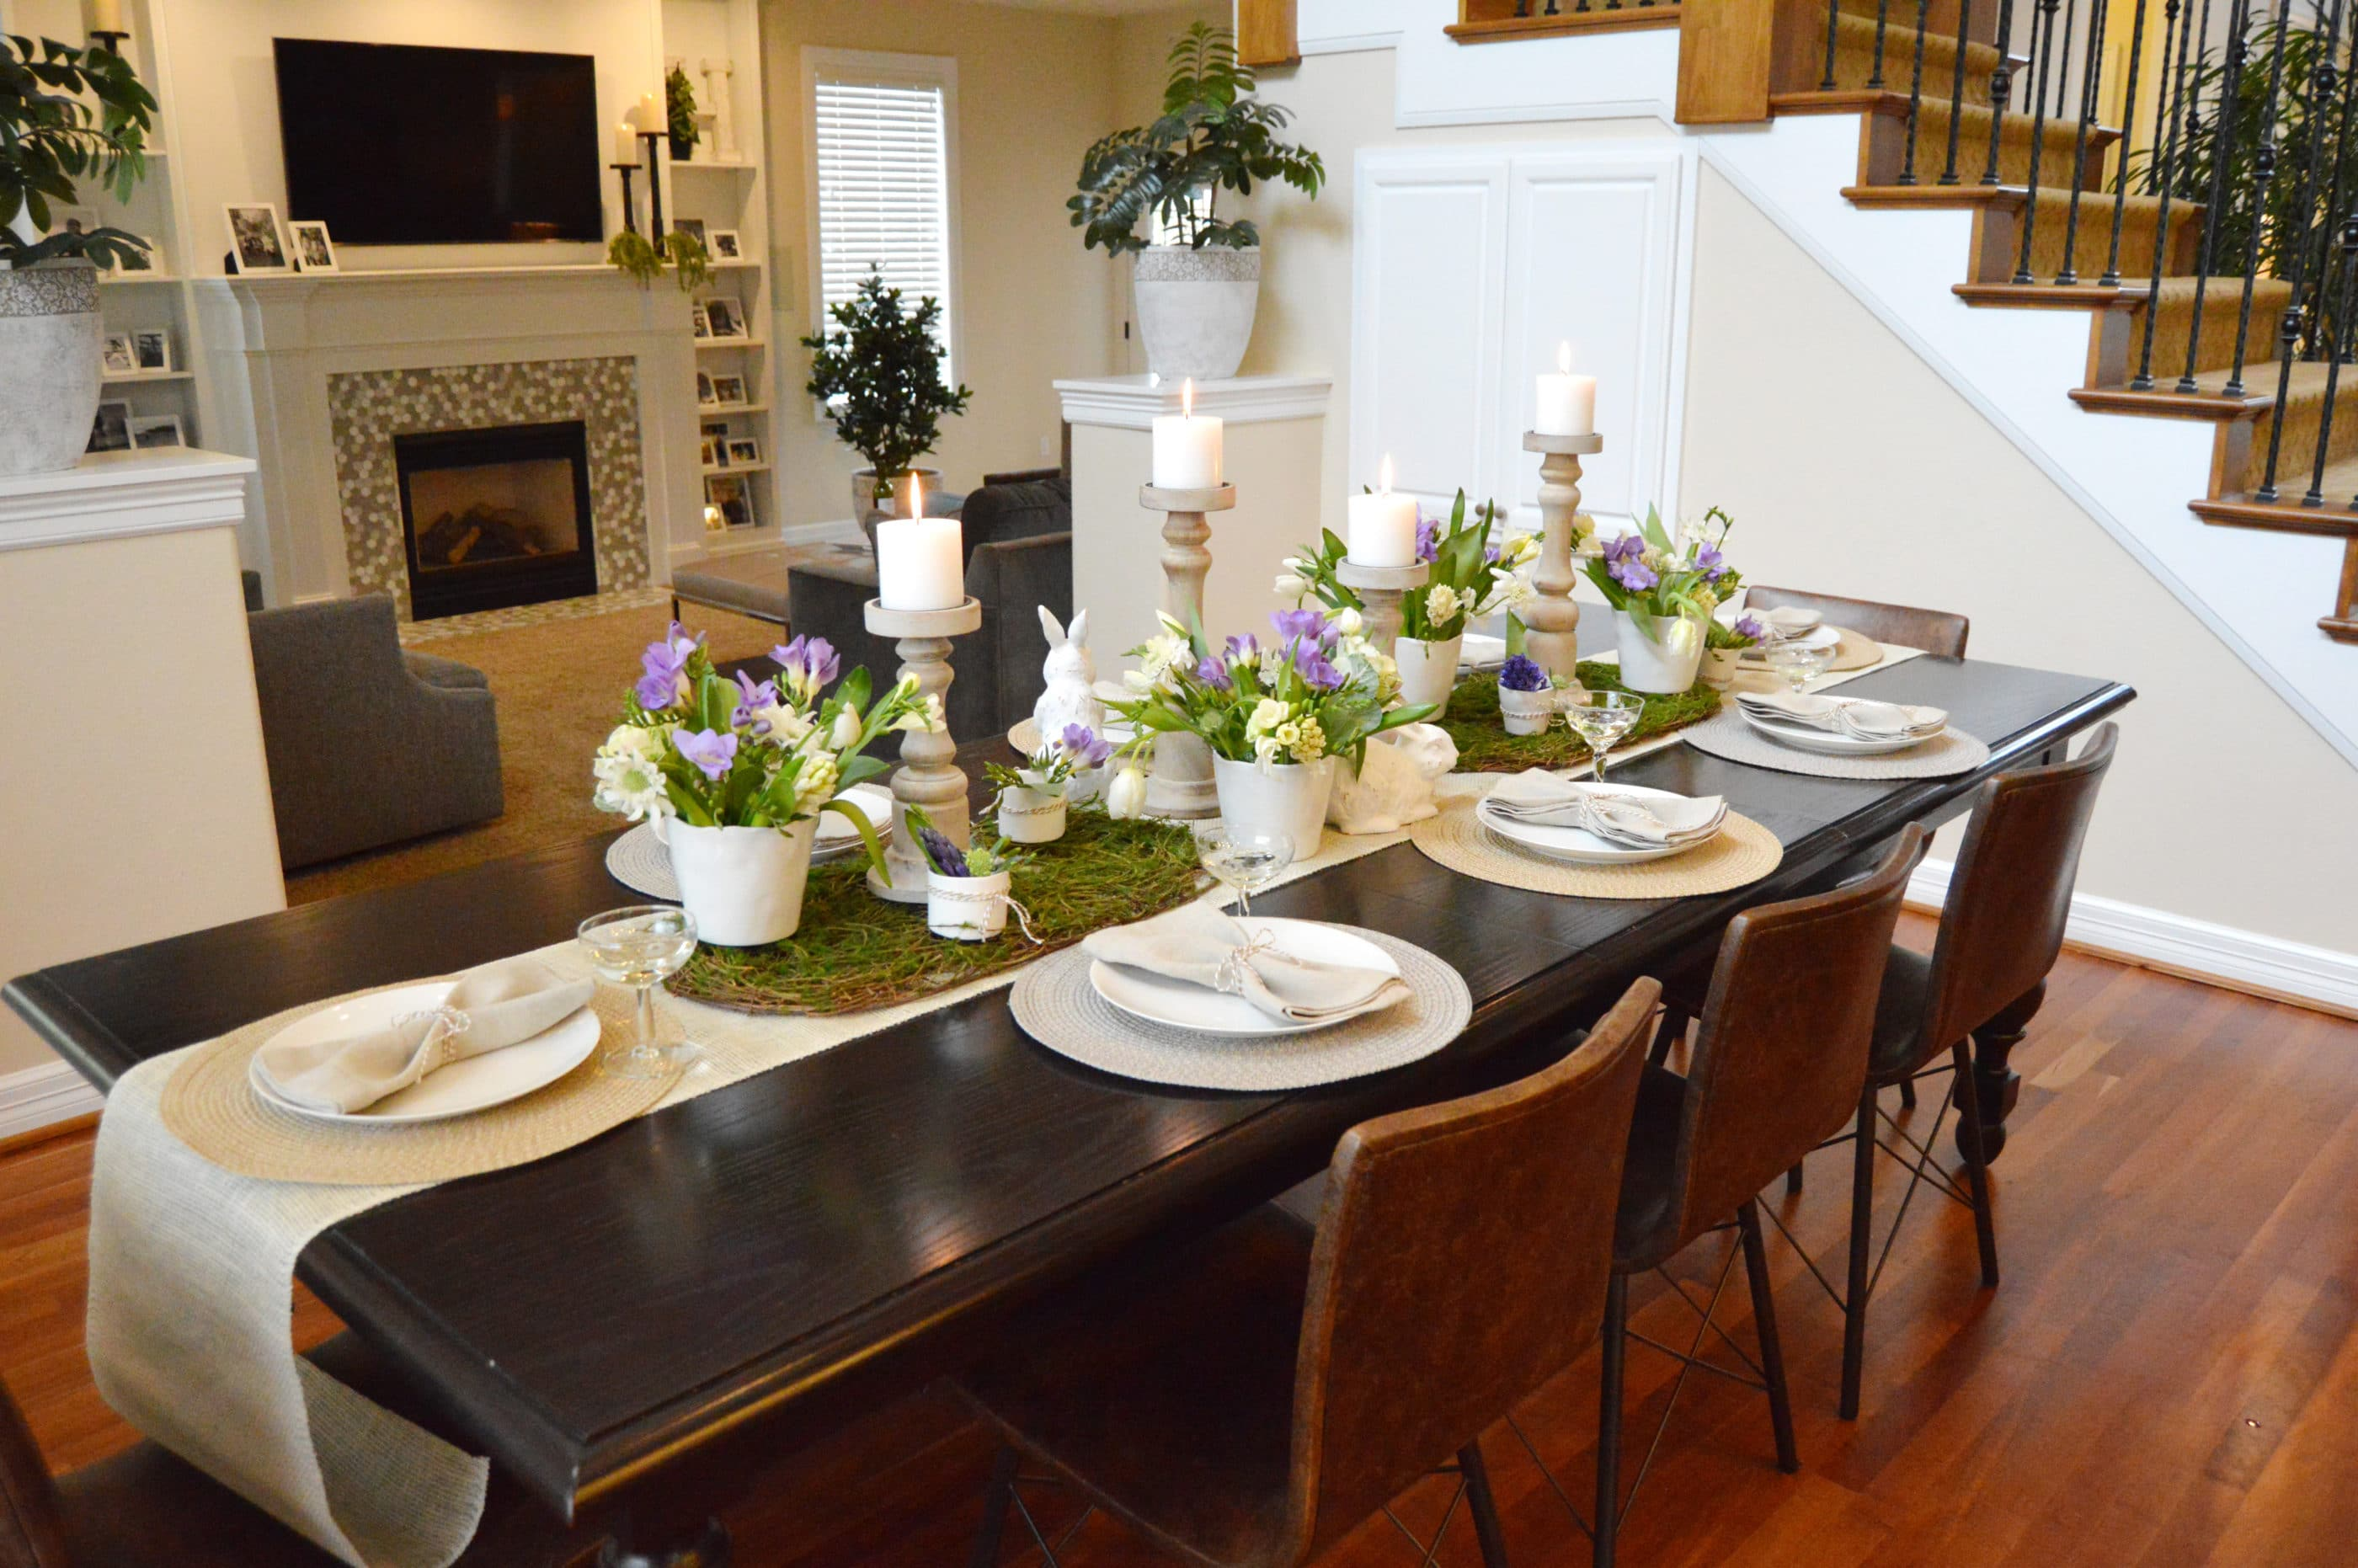 spring tablescape design with fresh flowers and linen table runner